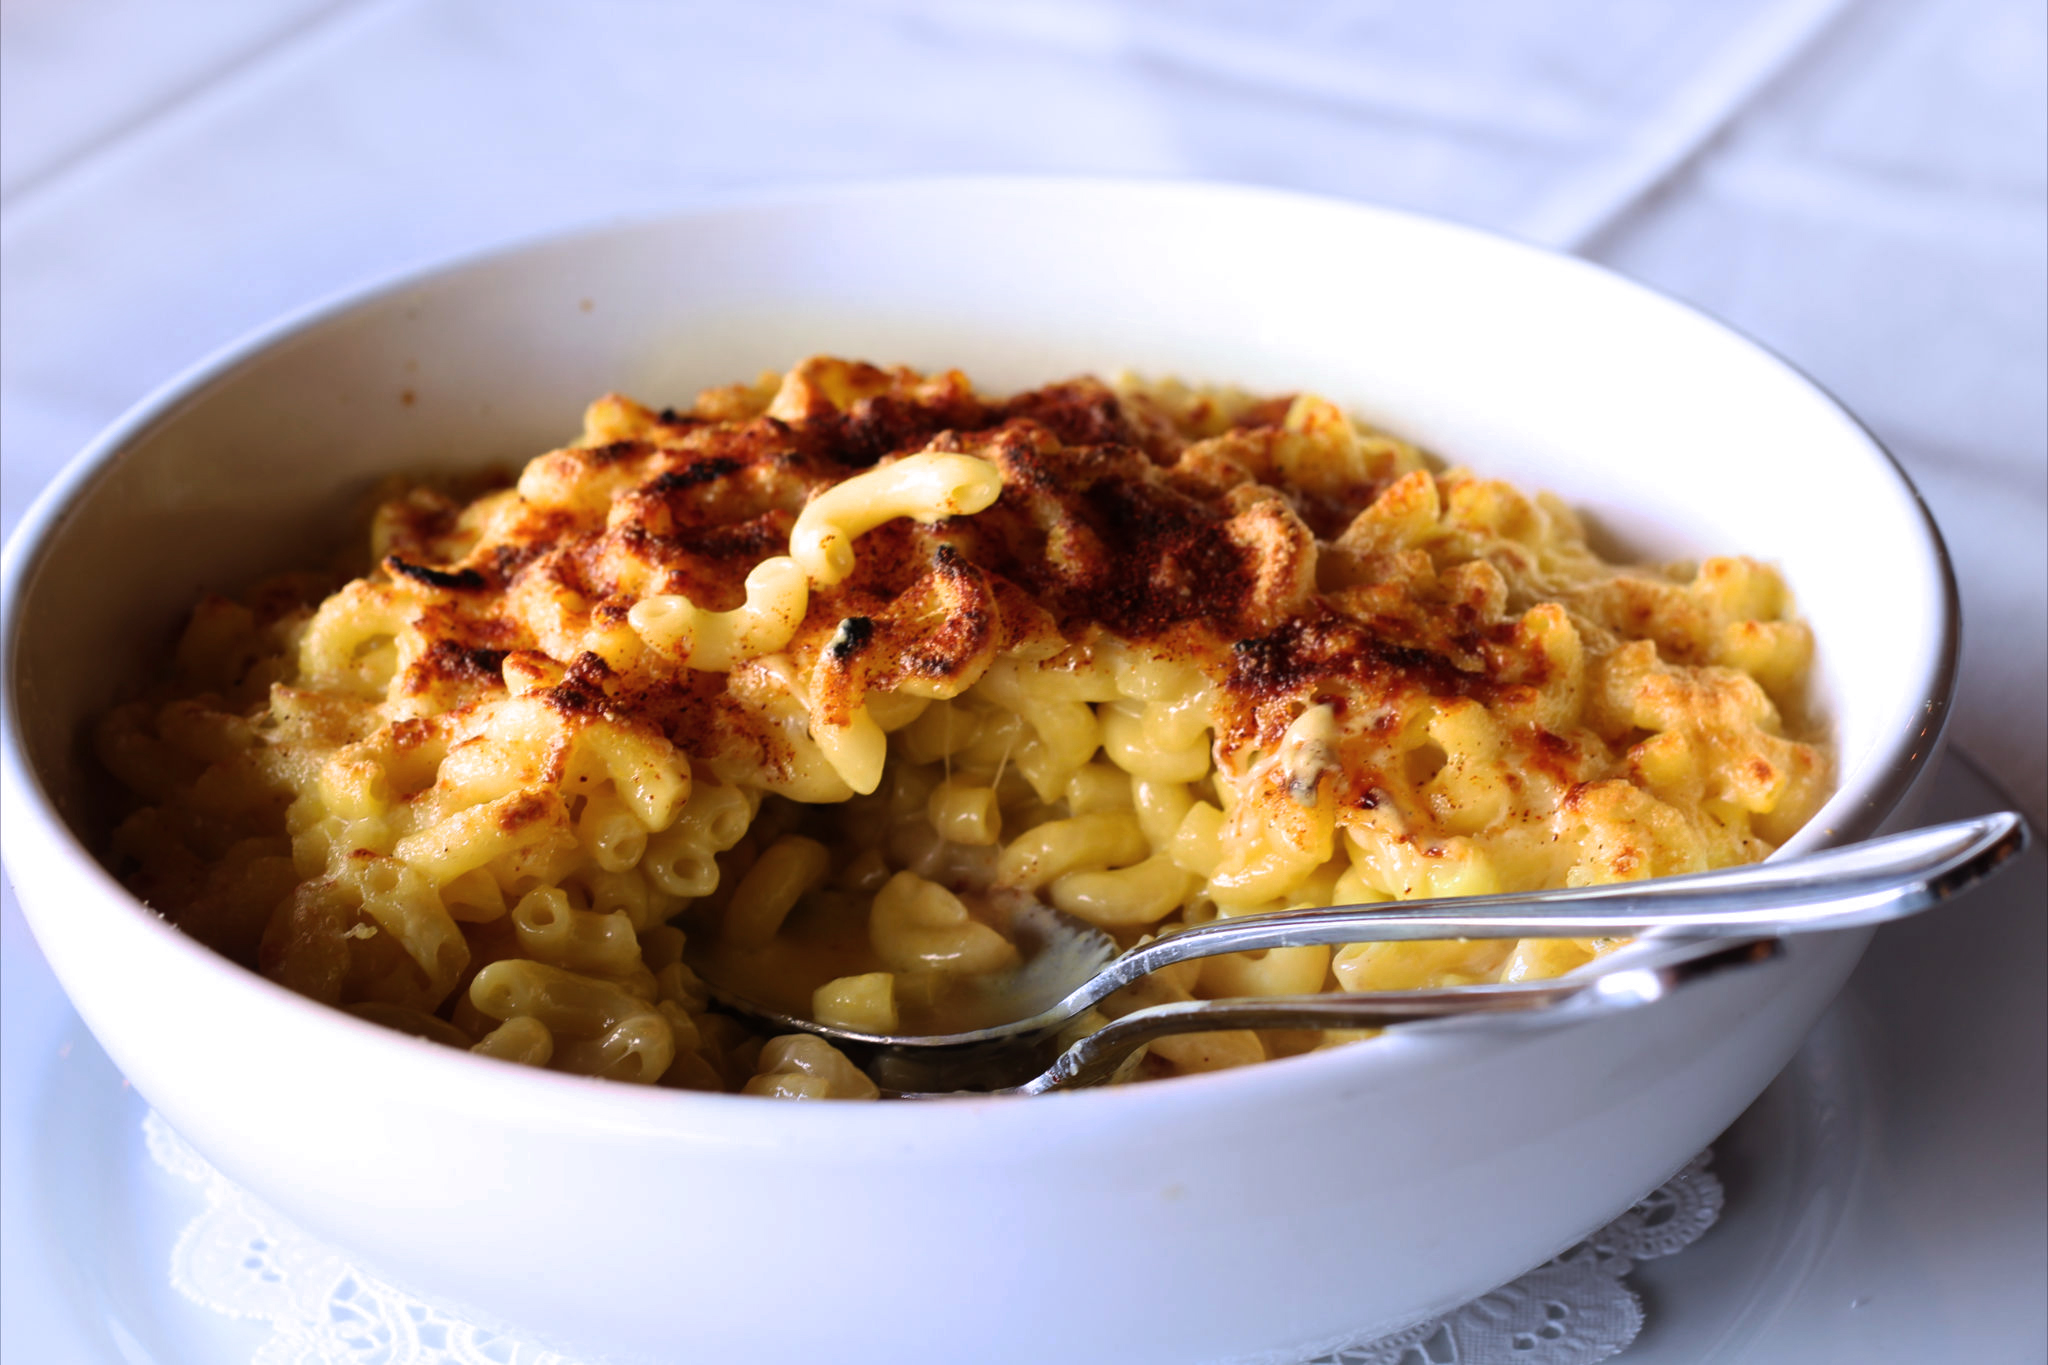 Home » General Recipes » Smoked Mac & Cheese